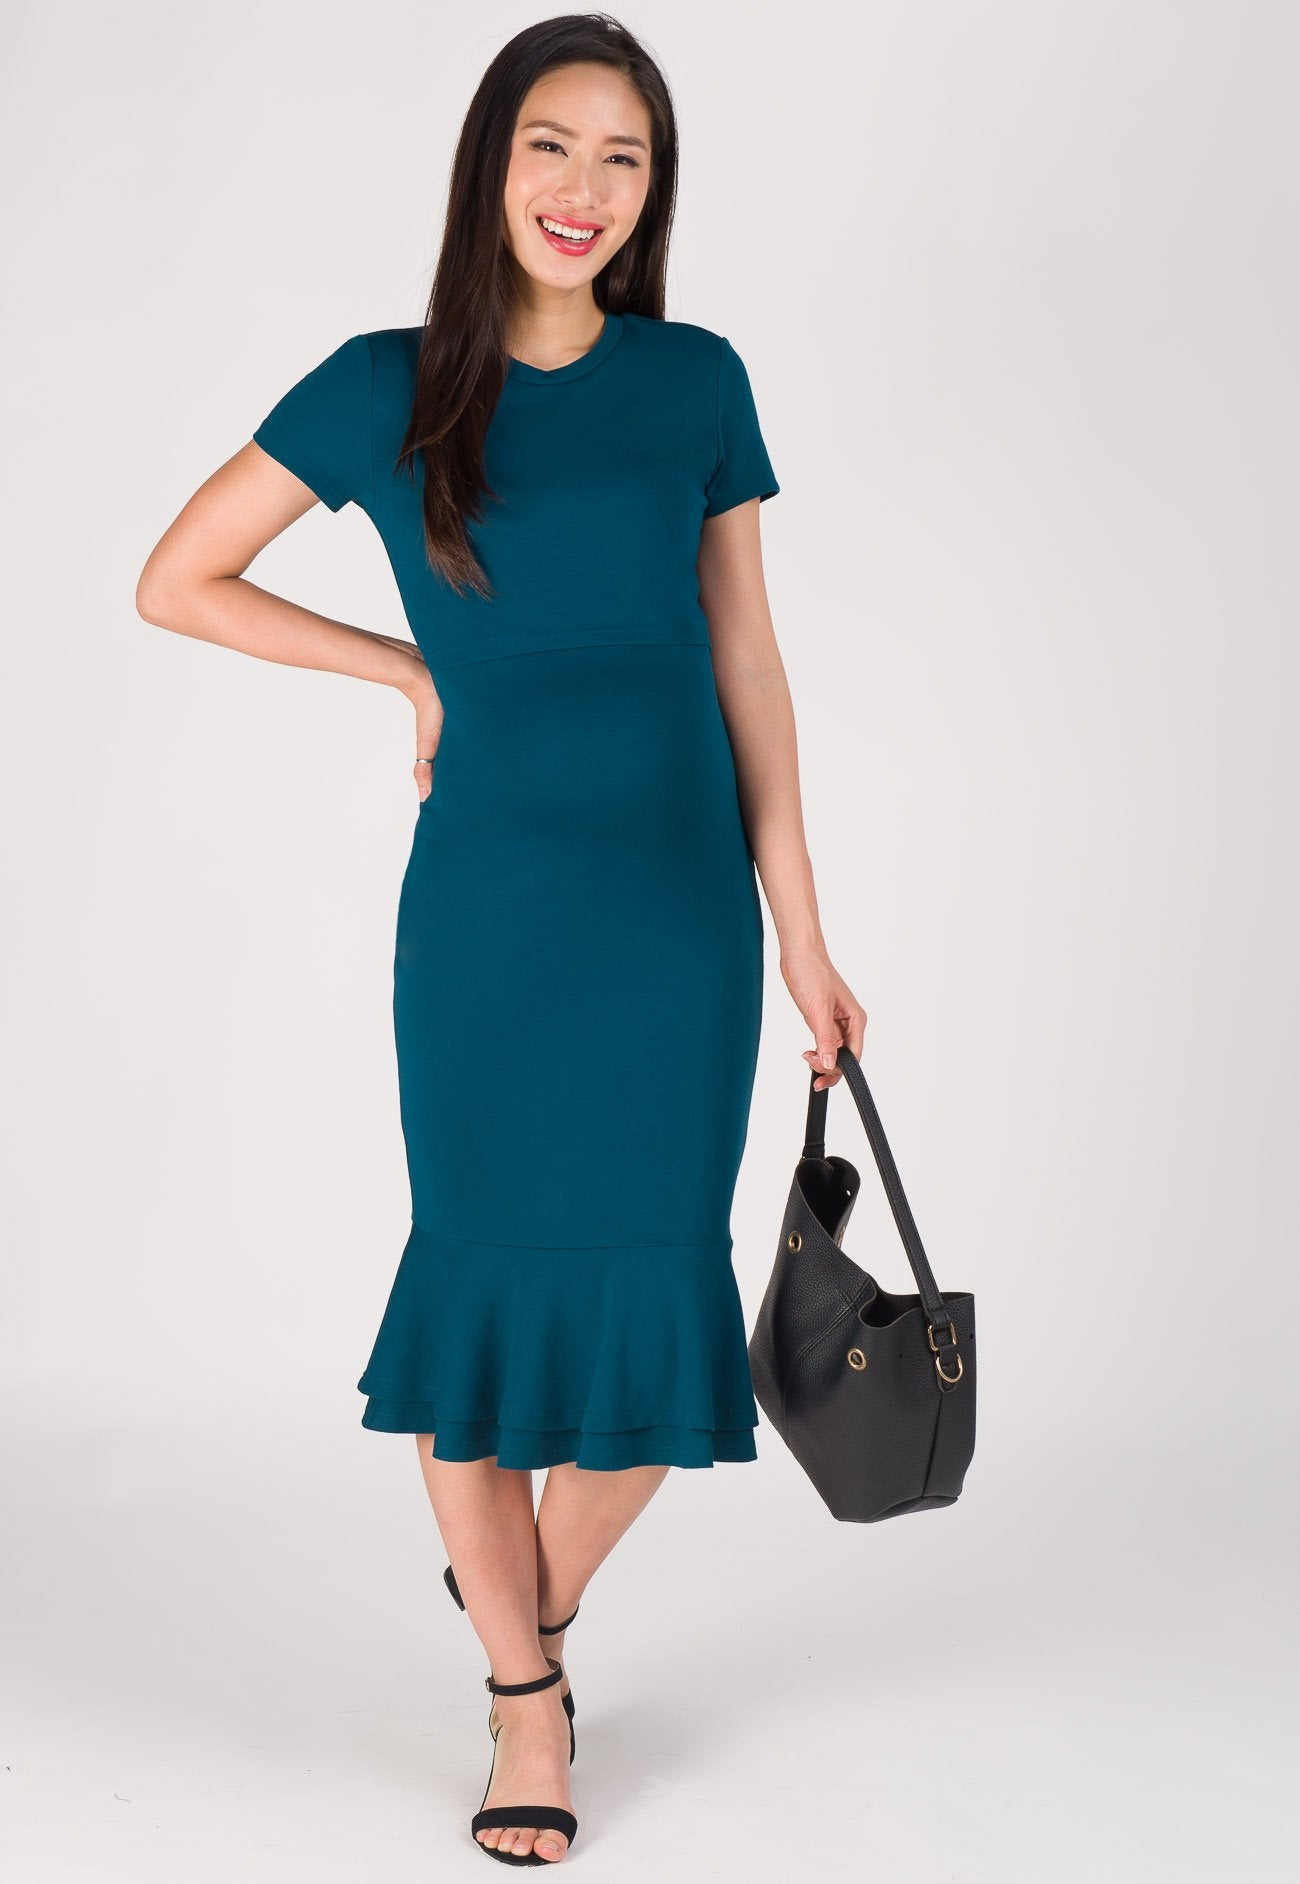 Mermaid Hem Bodycon Nursing Dress in Blue Green  by Jump Eat Cry - Maternity and nursing wear